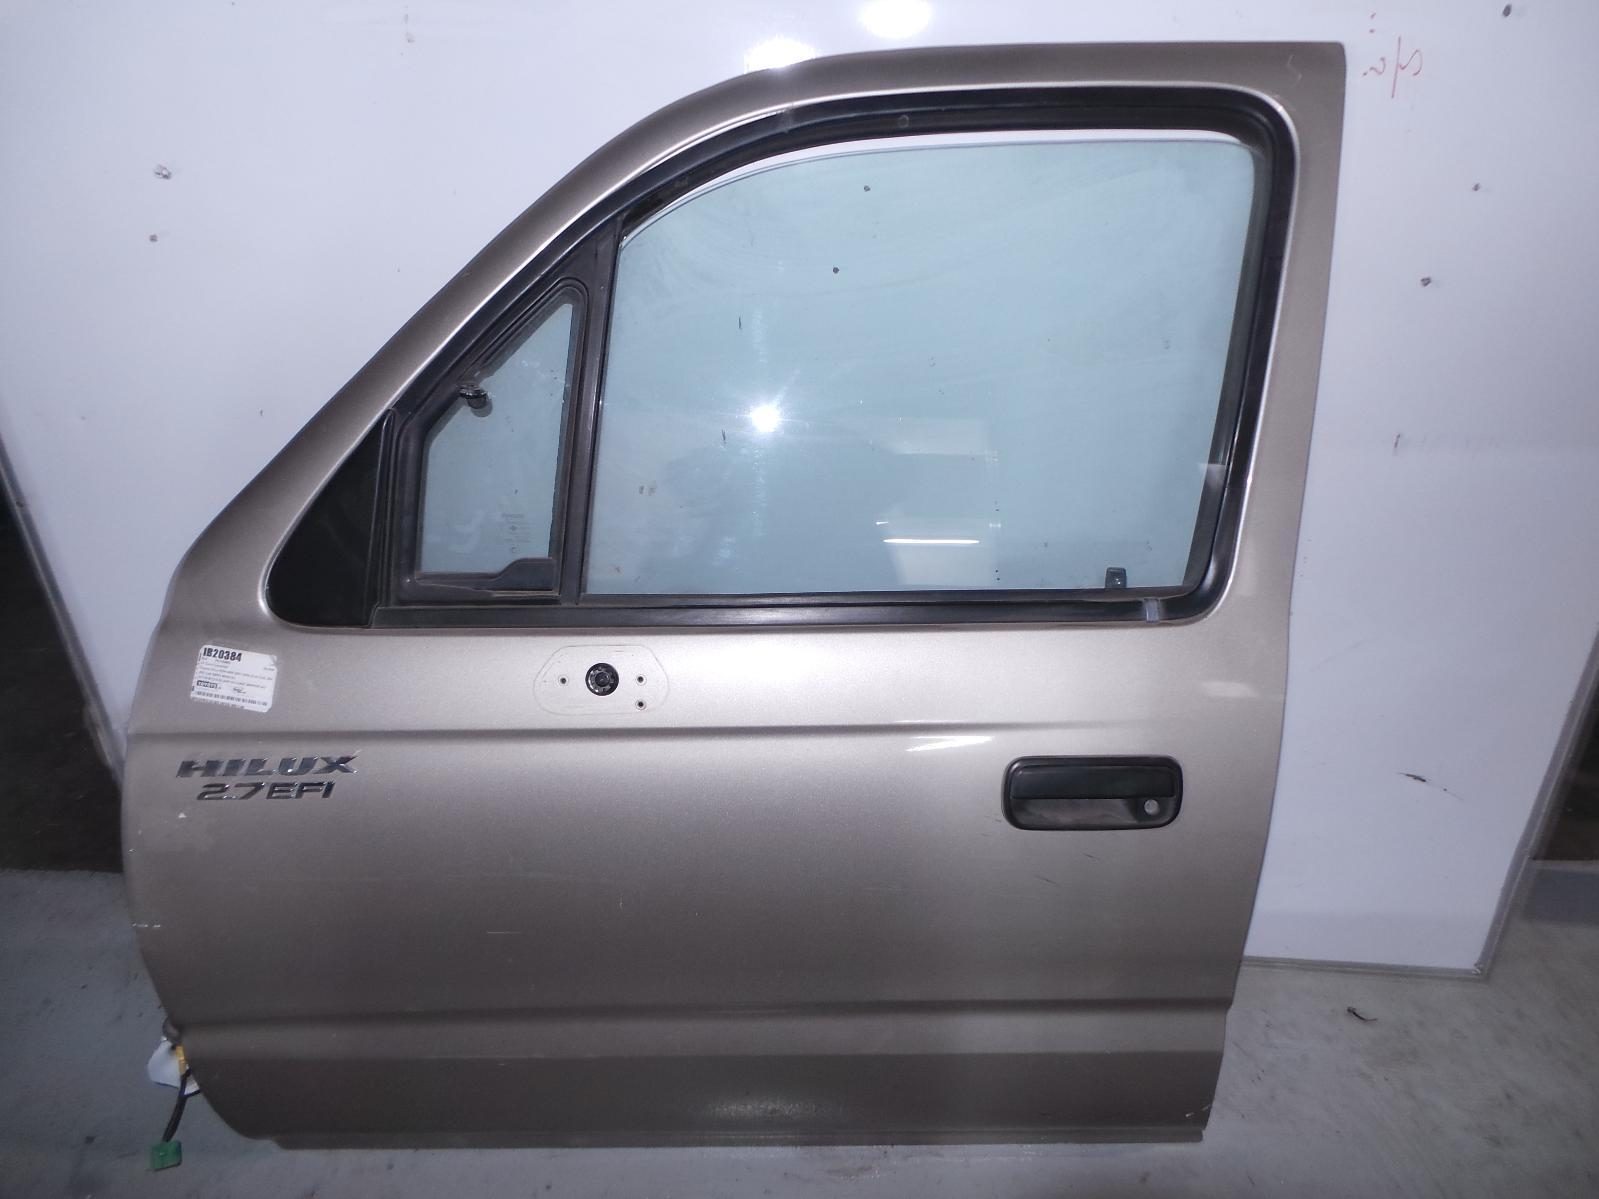 TOYOTA HILUX, Left Front Door, DUAL CAB, UTE BACK, 1/4 GLASS TYPE, 09/97-03/05